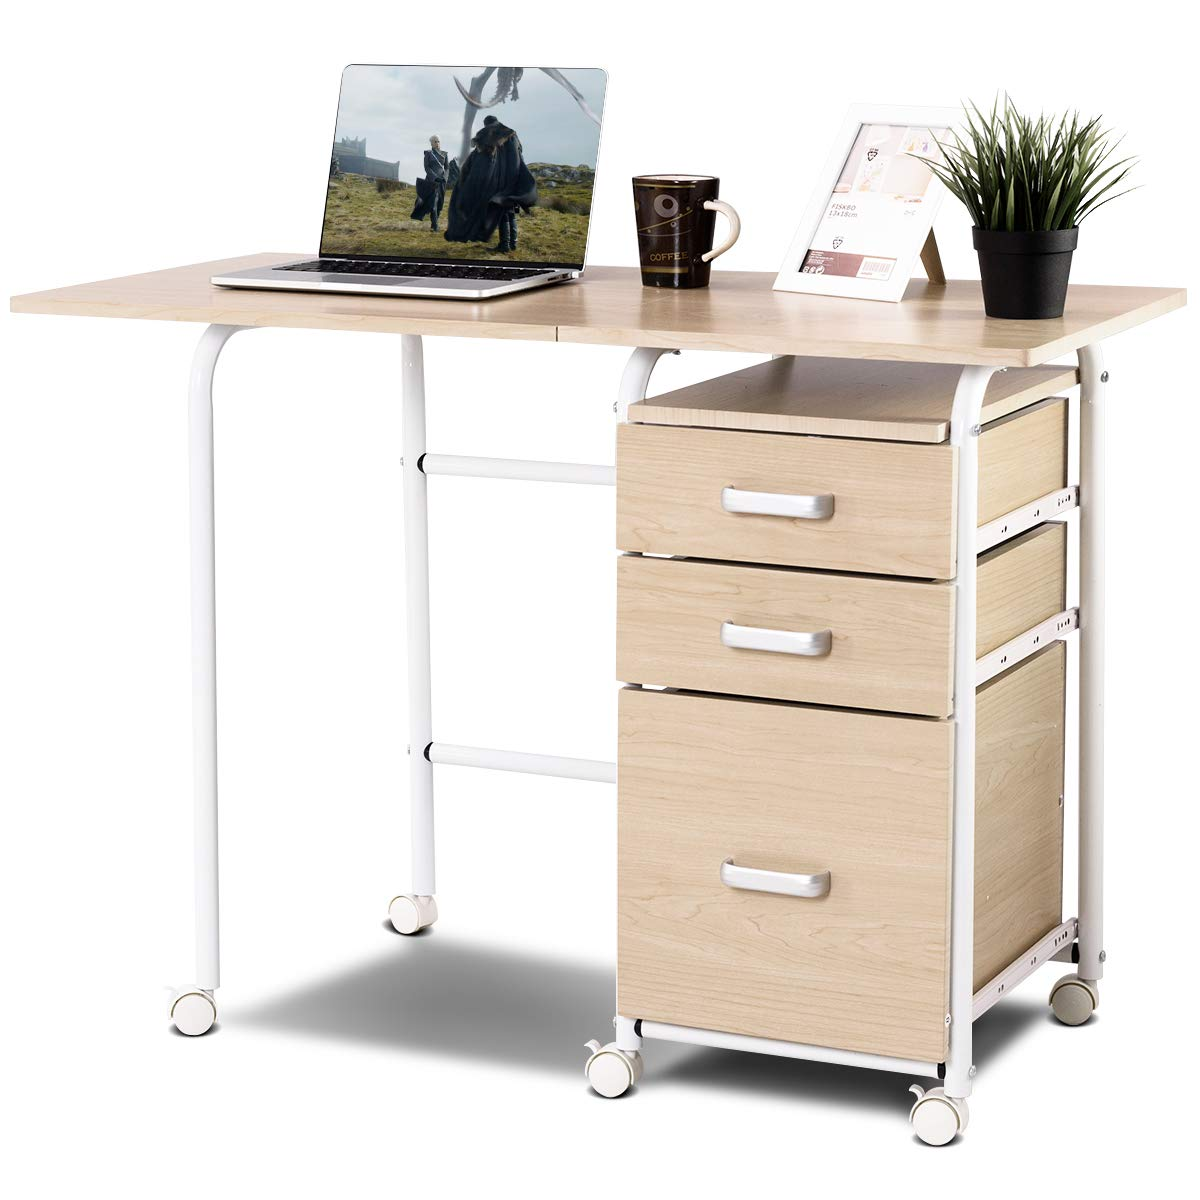 Tangkula Foldable Computer Desk, Home Office Computer Table with 3 Ample Storage Drawers, Laptop Desk Writing Table, Portable Space Saving Compact Desk for Dome Apartment, Folding Table (Natural)